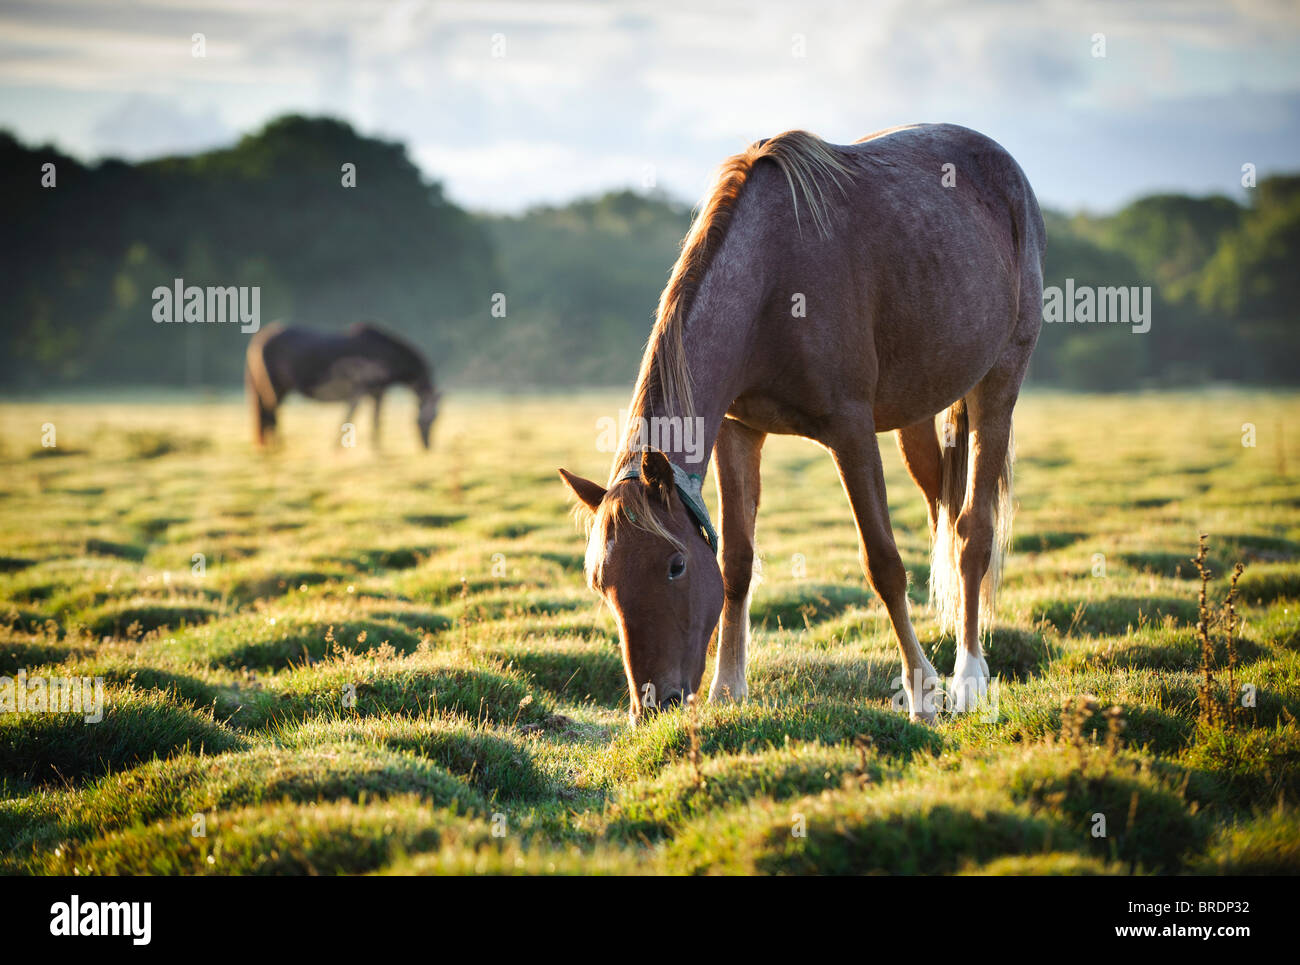 Horses at Sunrise, Balmer Lawn near Brockenhurst, New Forest, Hampshire, England, UK - Stock Image